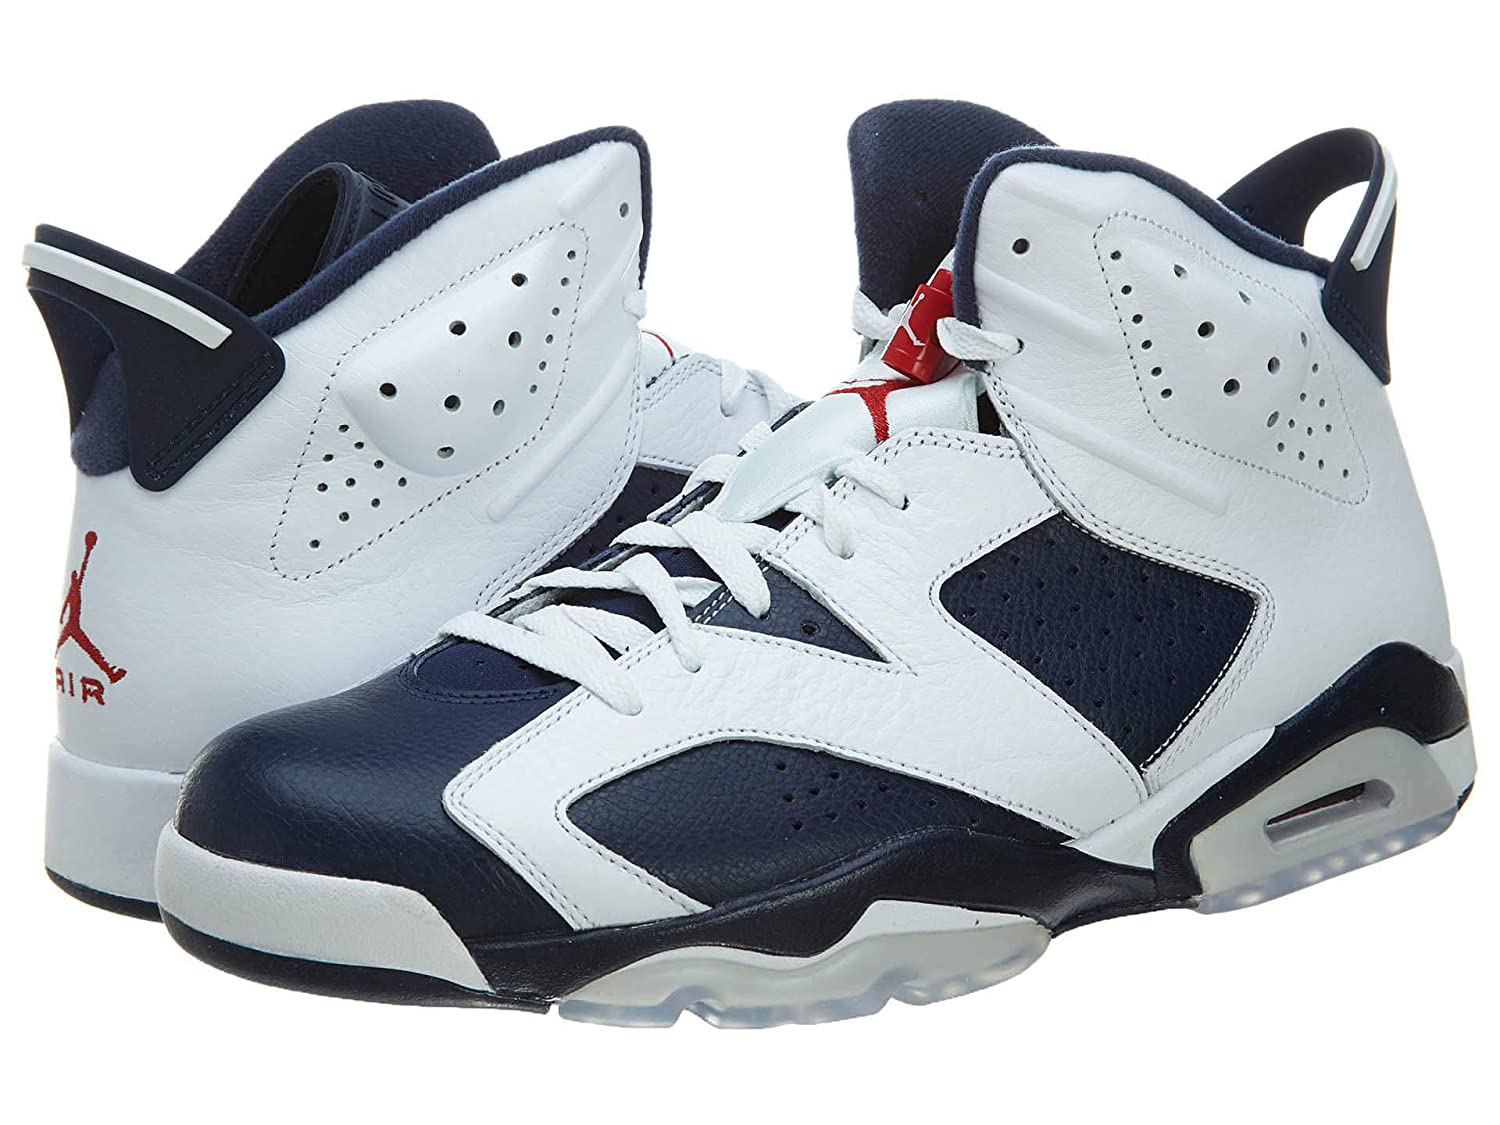 promo code 1a86e 65369 Nike Mens Air Jordan 6 Retro Olympic White/Midnight Navy-Varsity Red  Leather Basketball Shoes Size 9.5